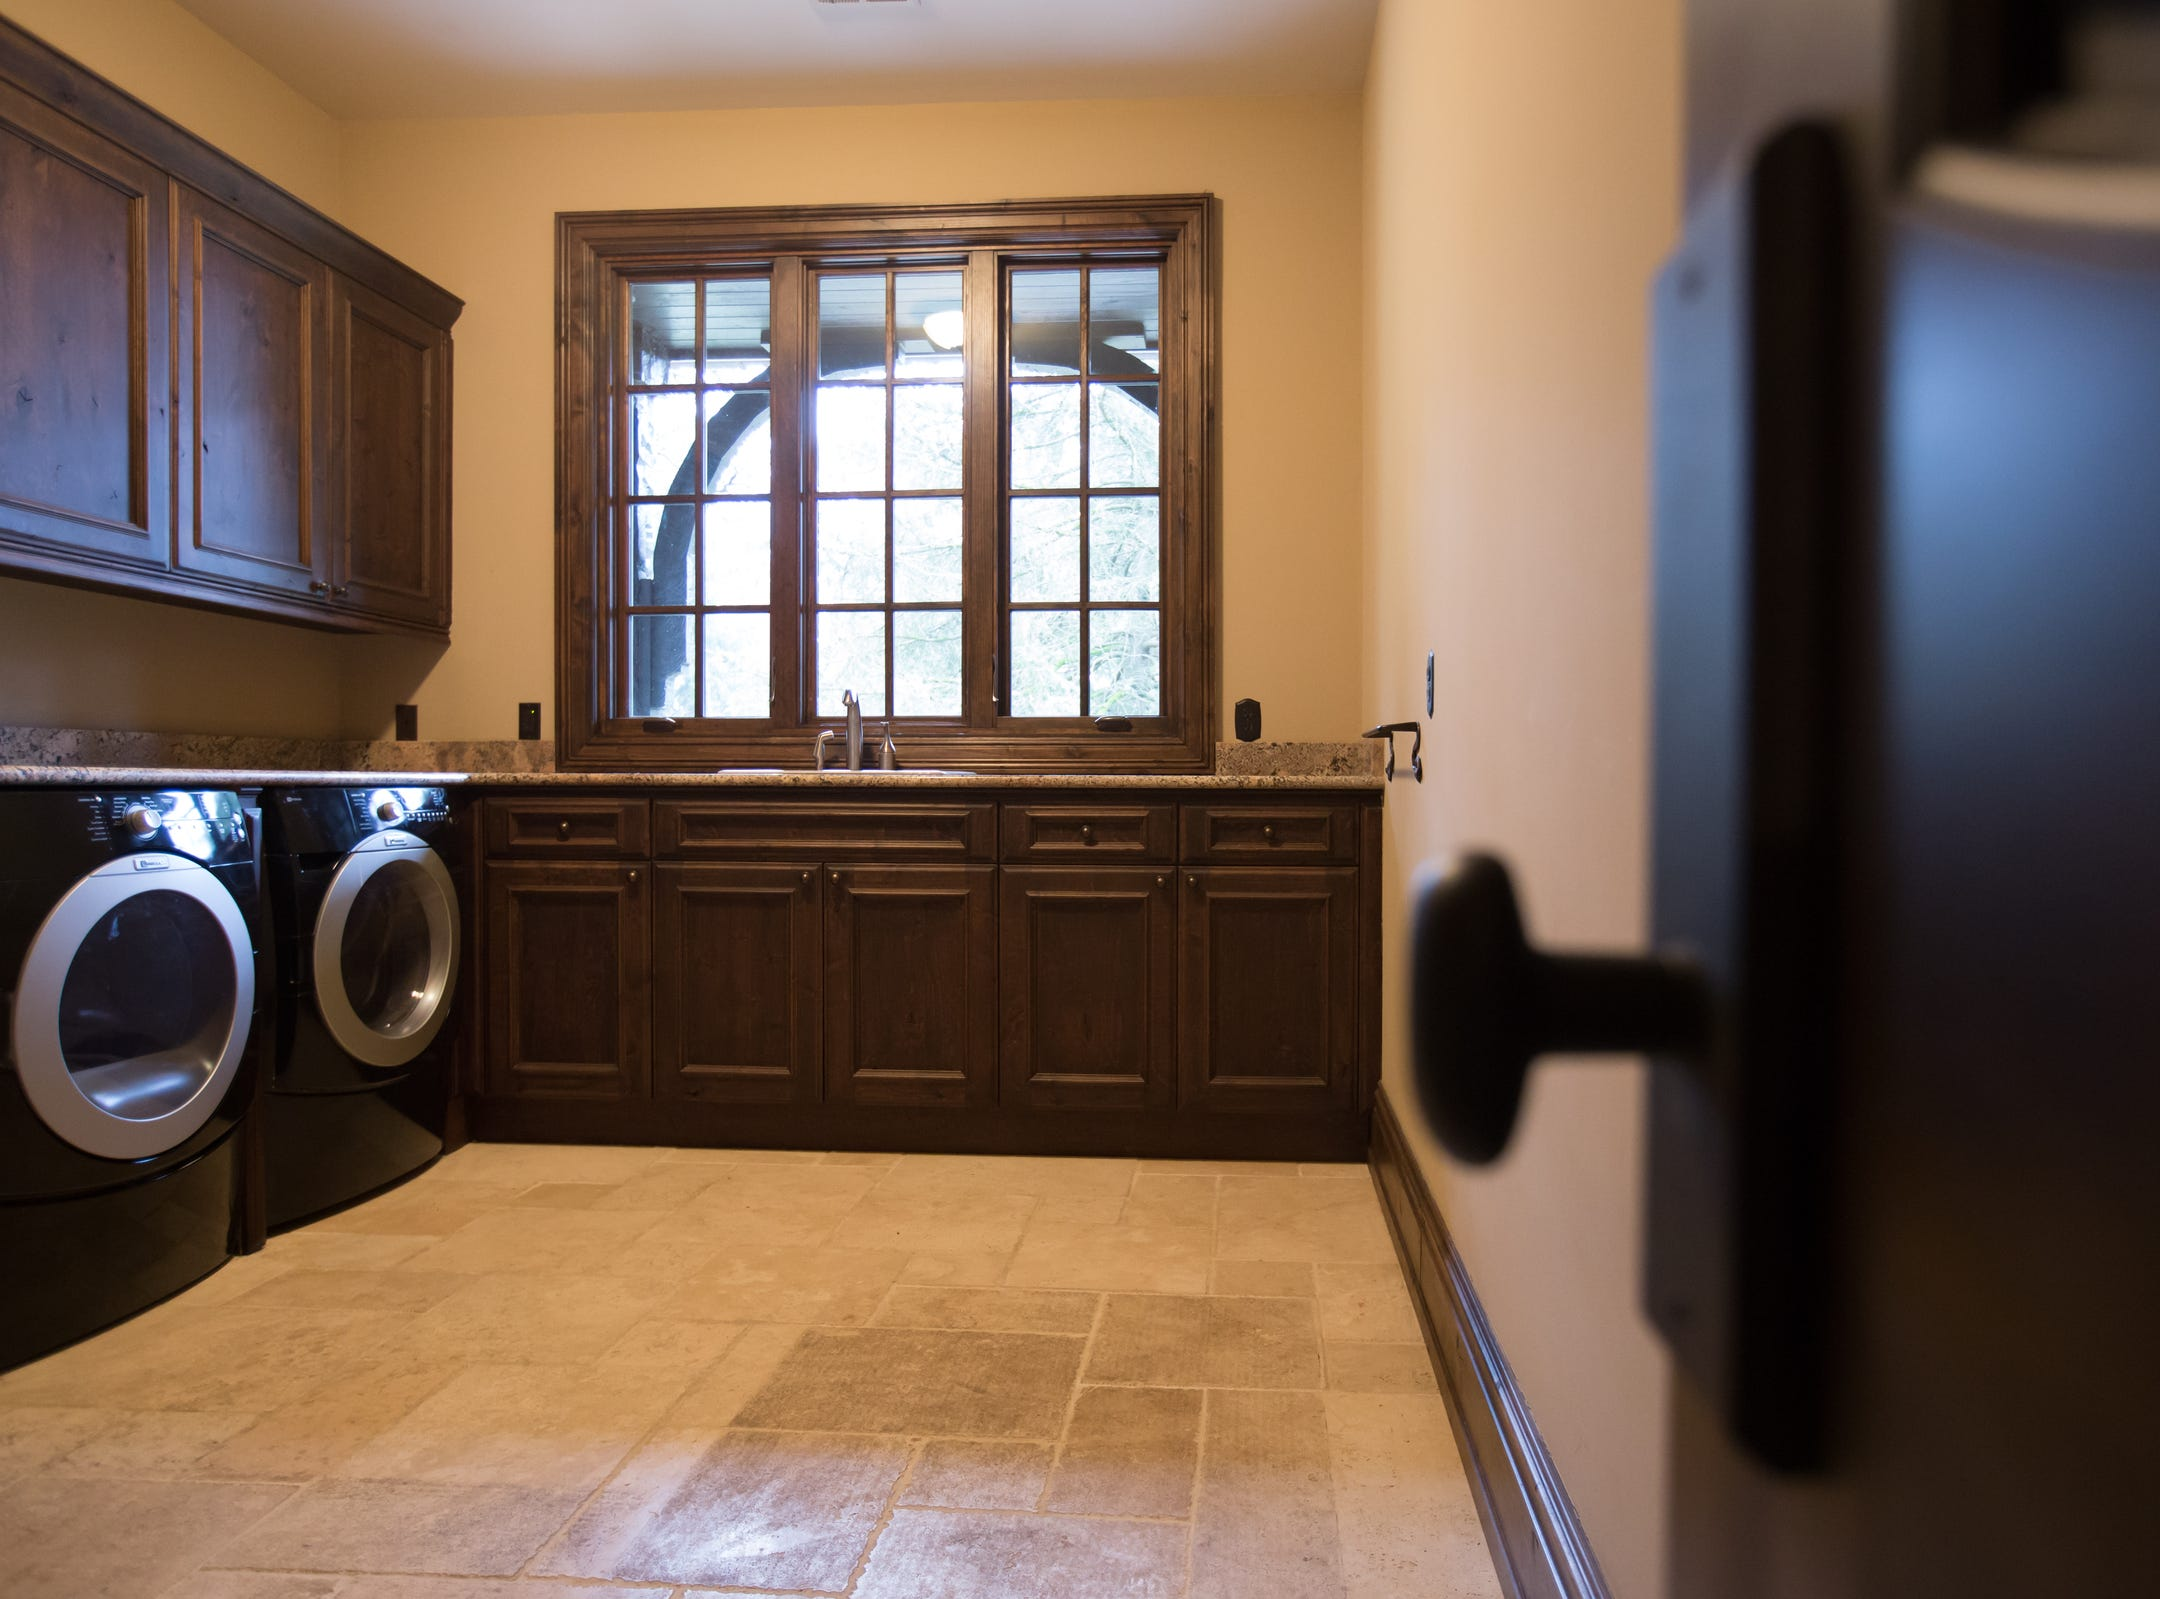 A first floor laundry room.